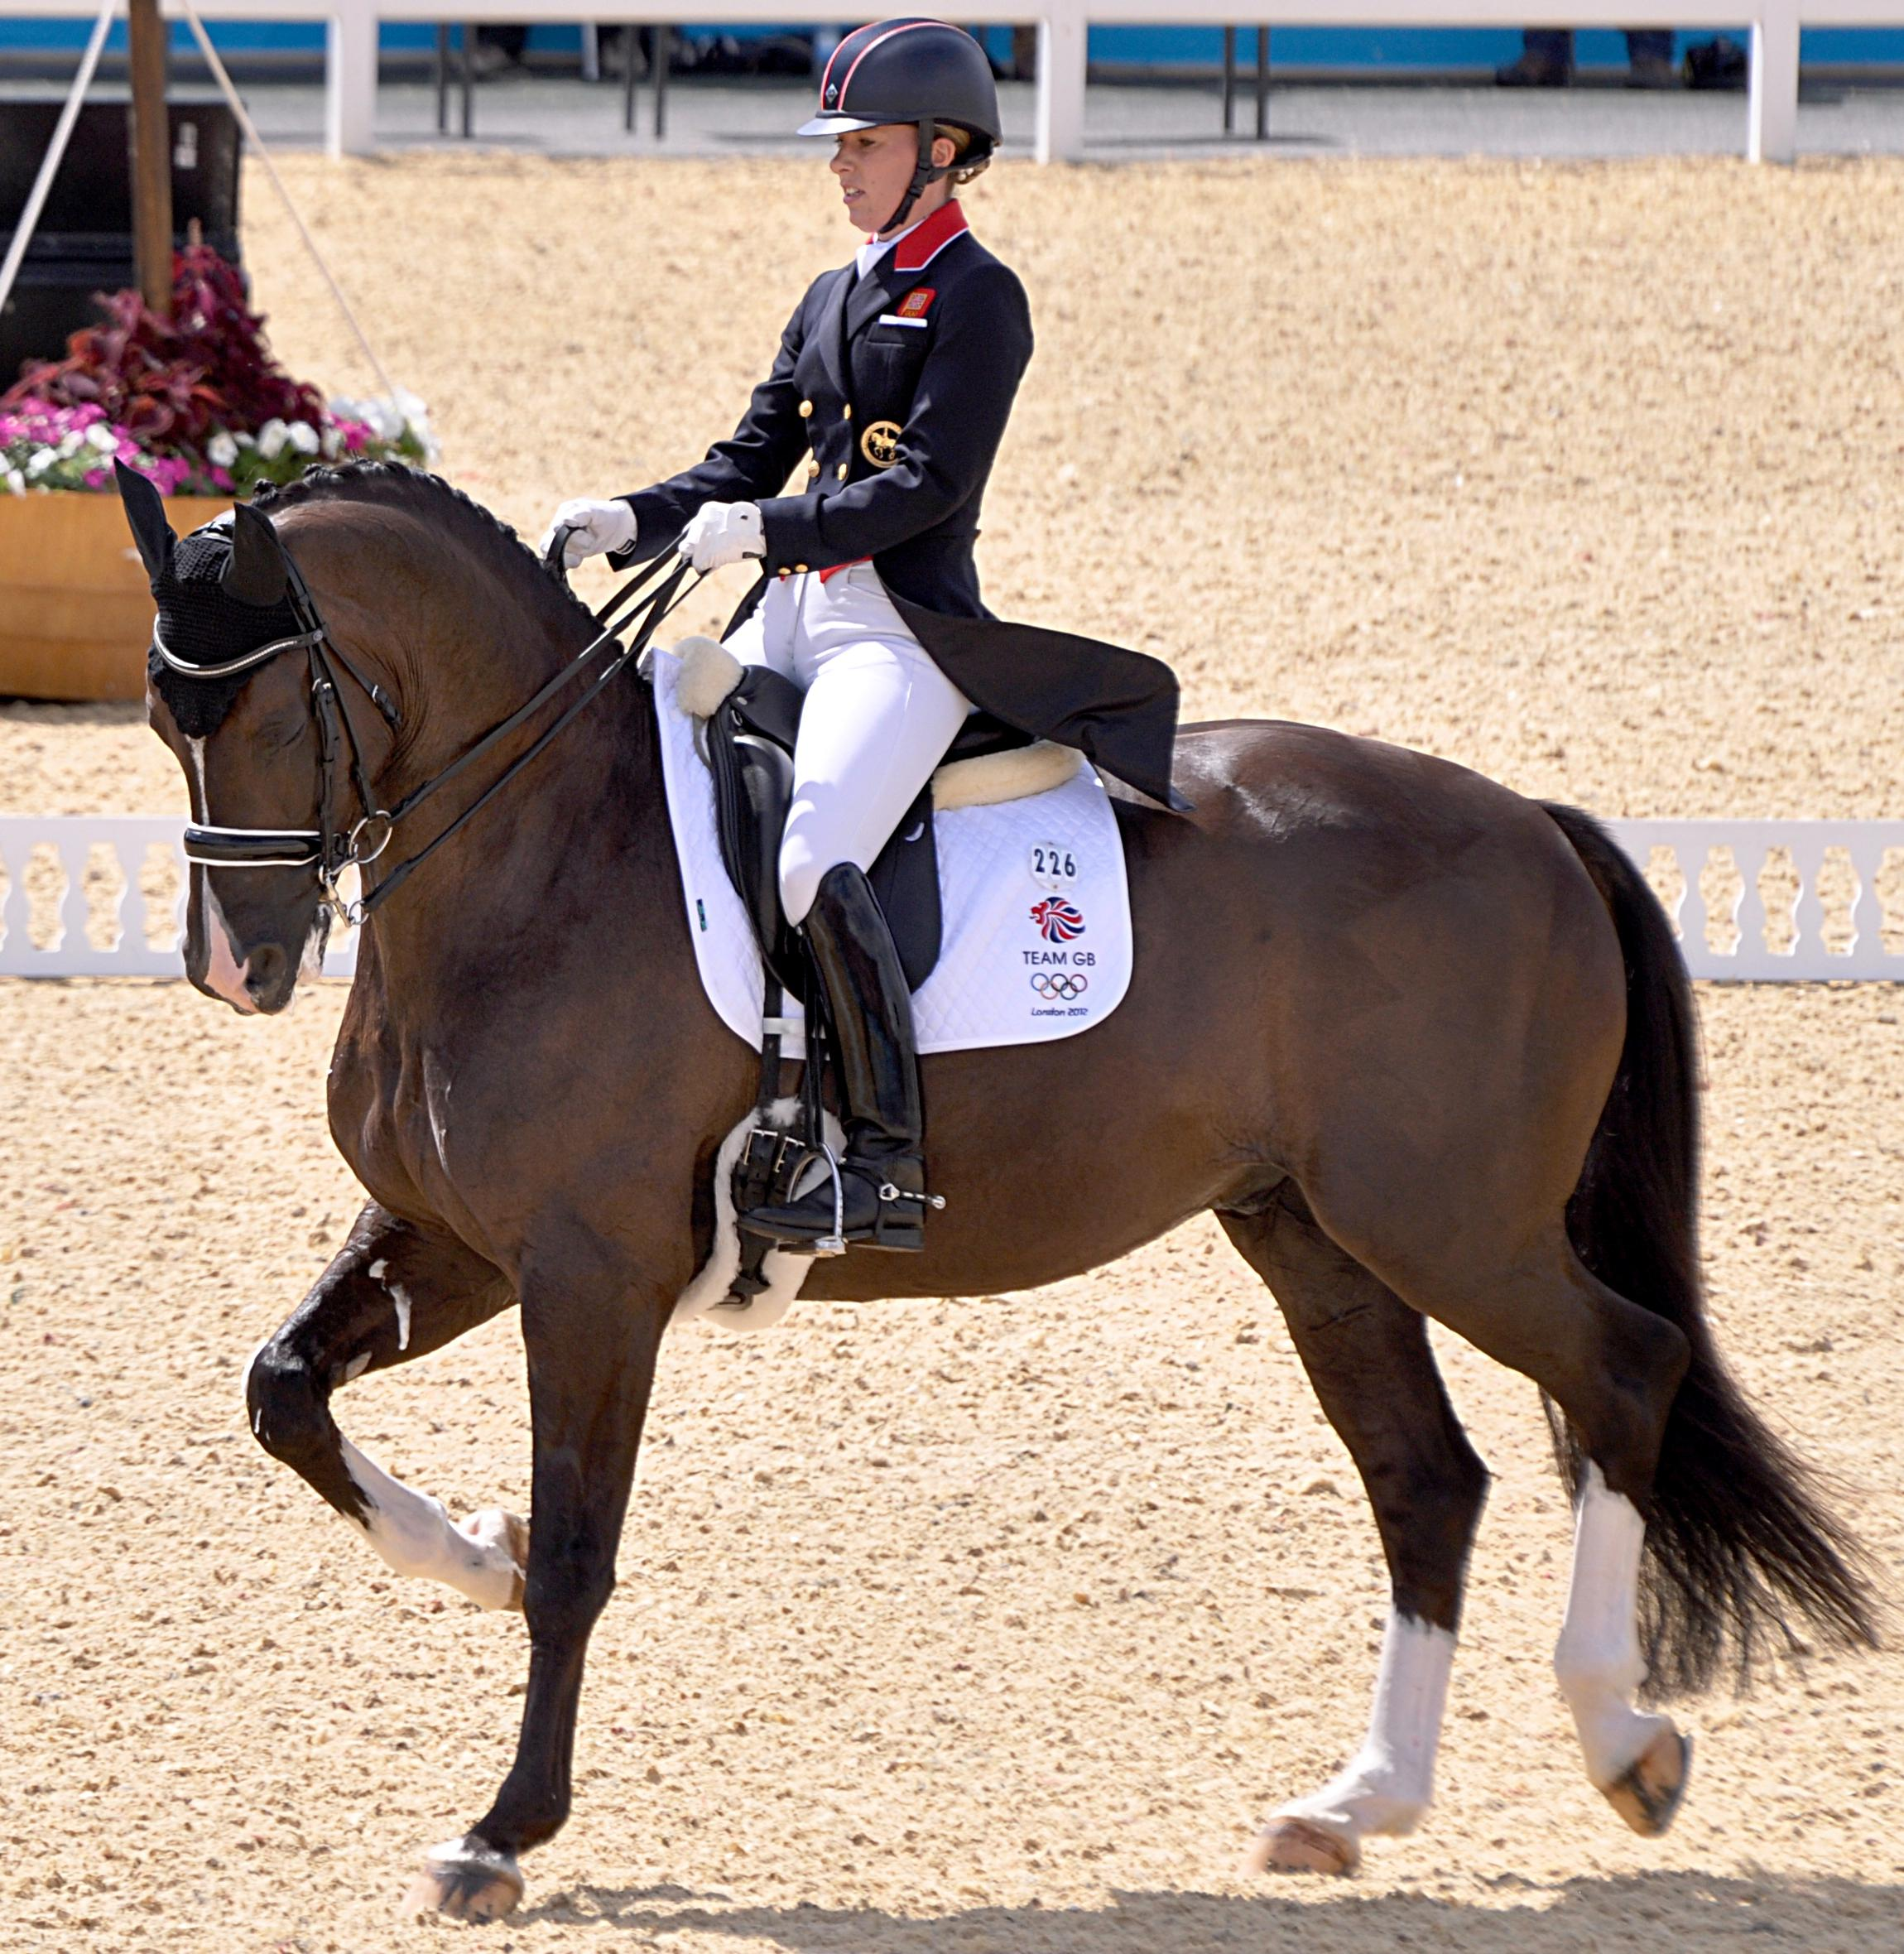 file charlotte dujardin 2012 olympic dressage 1 jpg wikimedia commons. Black Bedroom Furniture Sets. Home Design Ideas